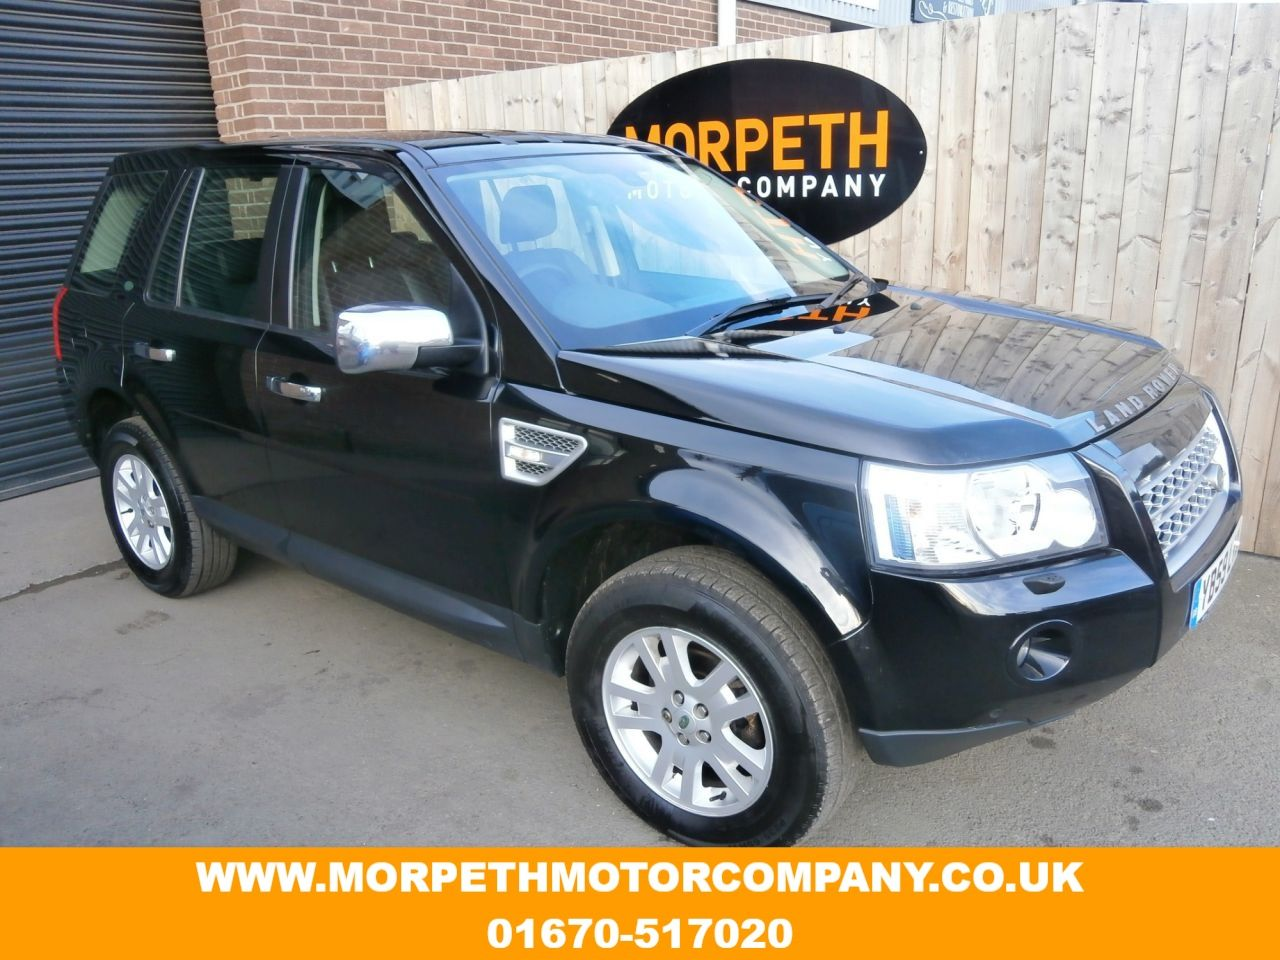 See previous sold Car from Morpeth Motor Company